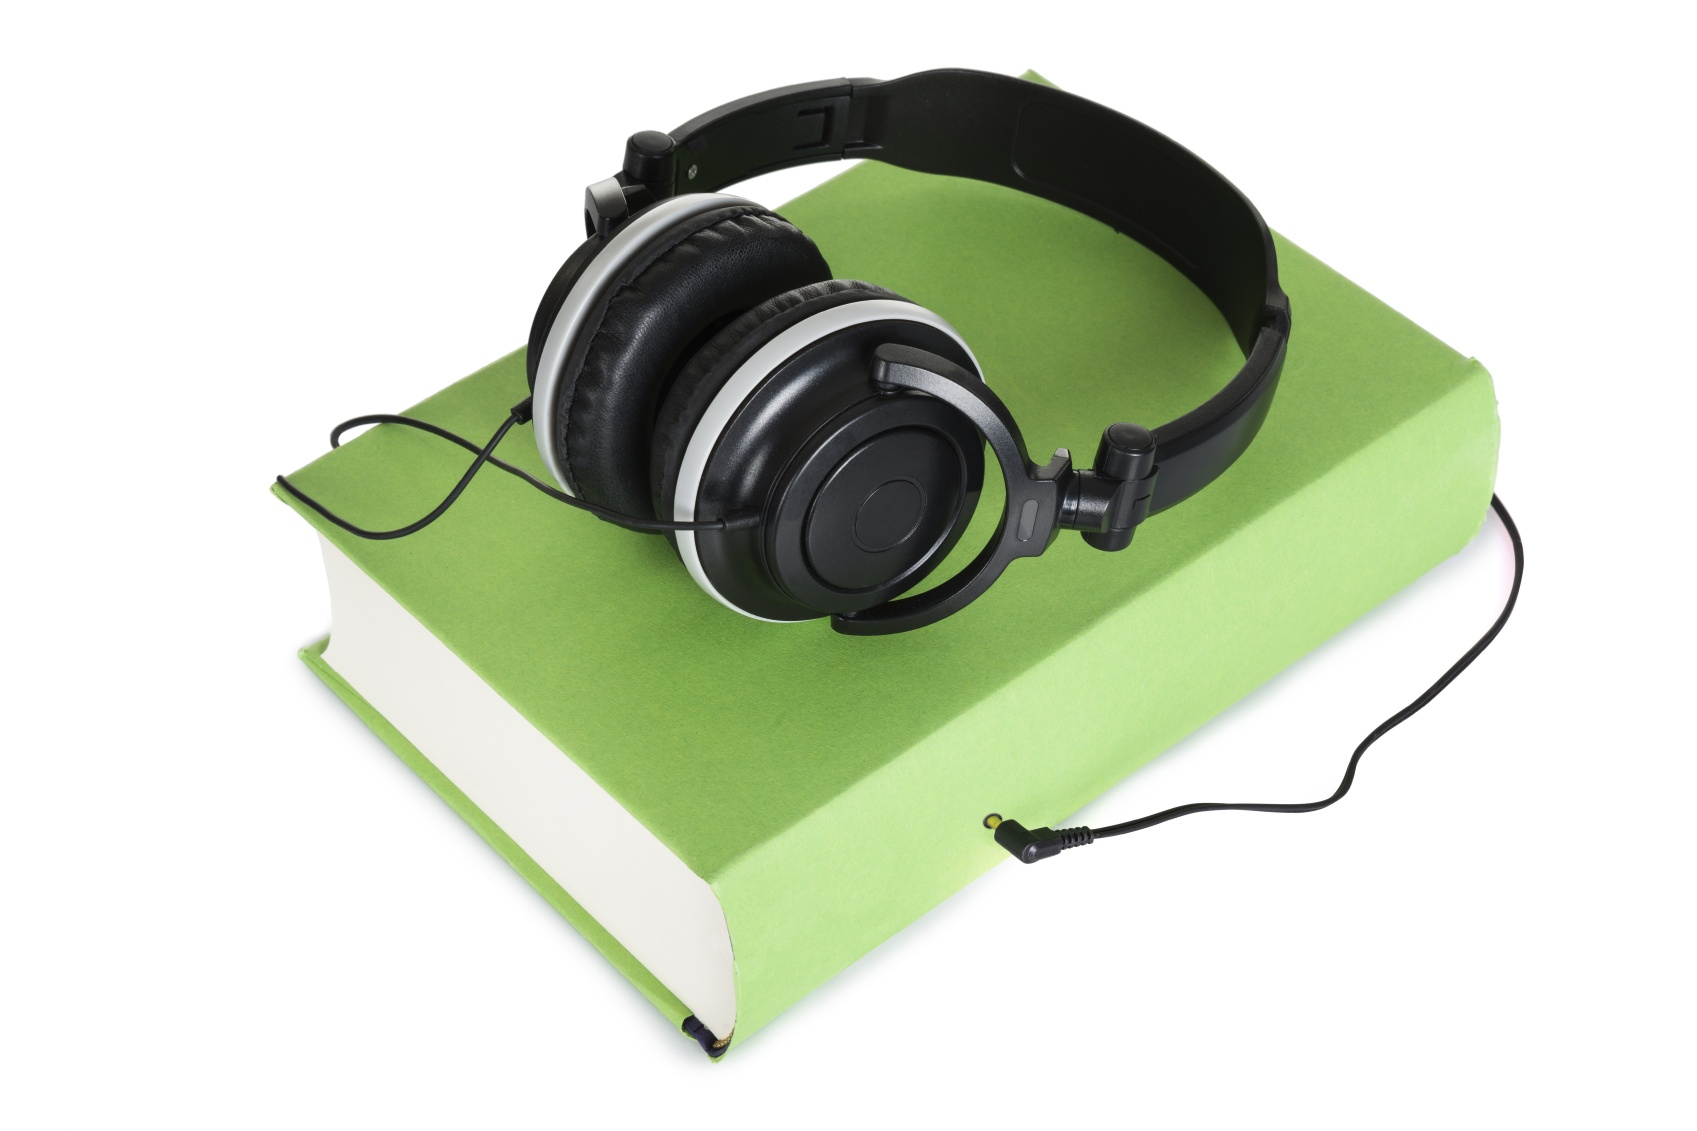 Headphone Over Green Audio Book On White Background